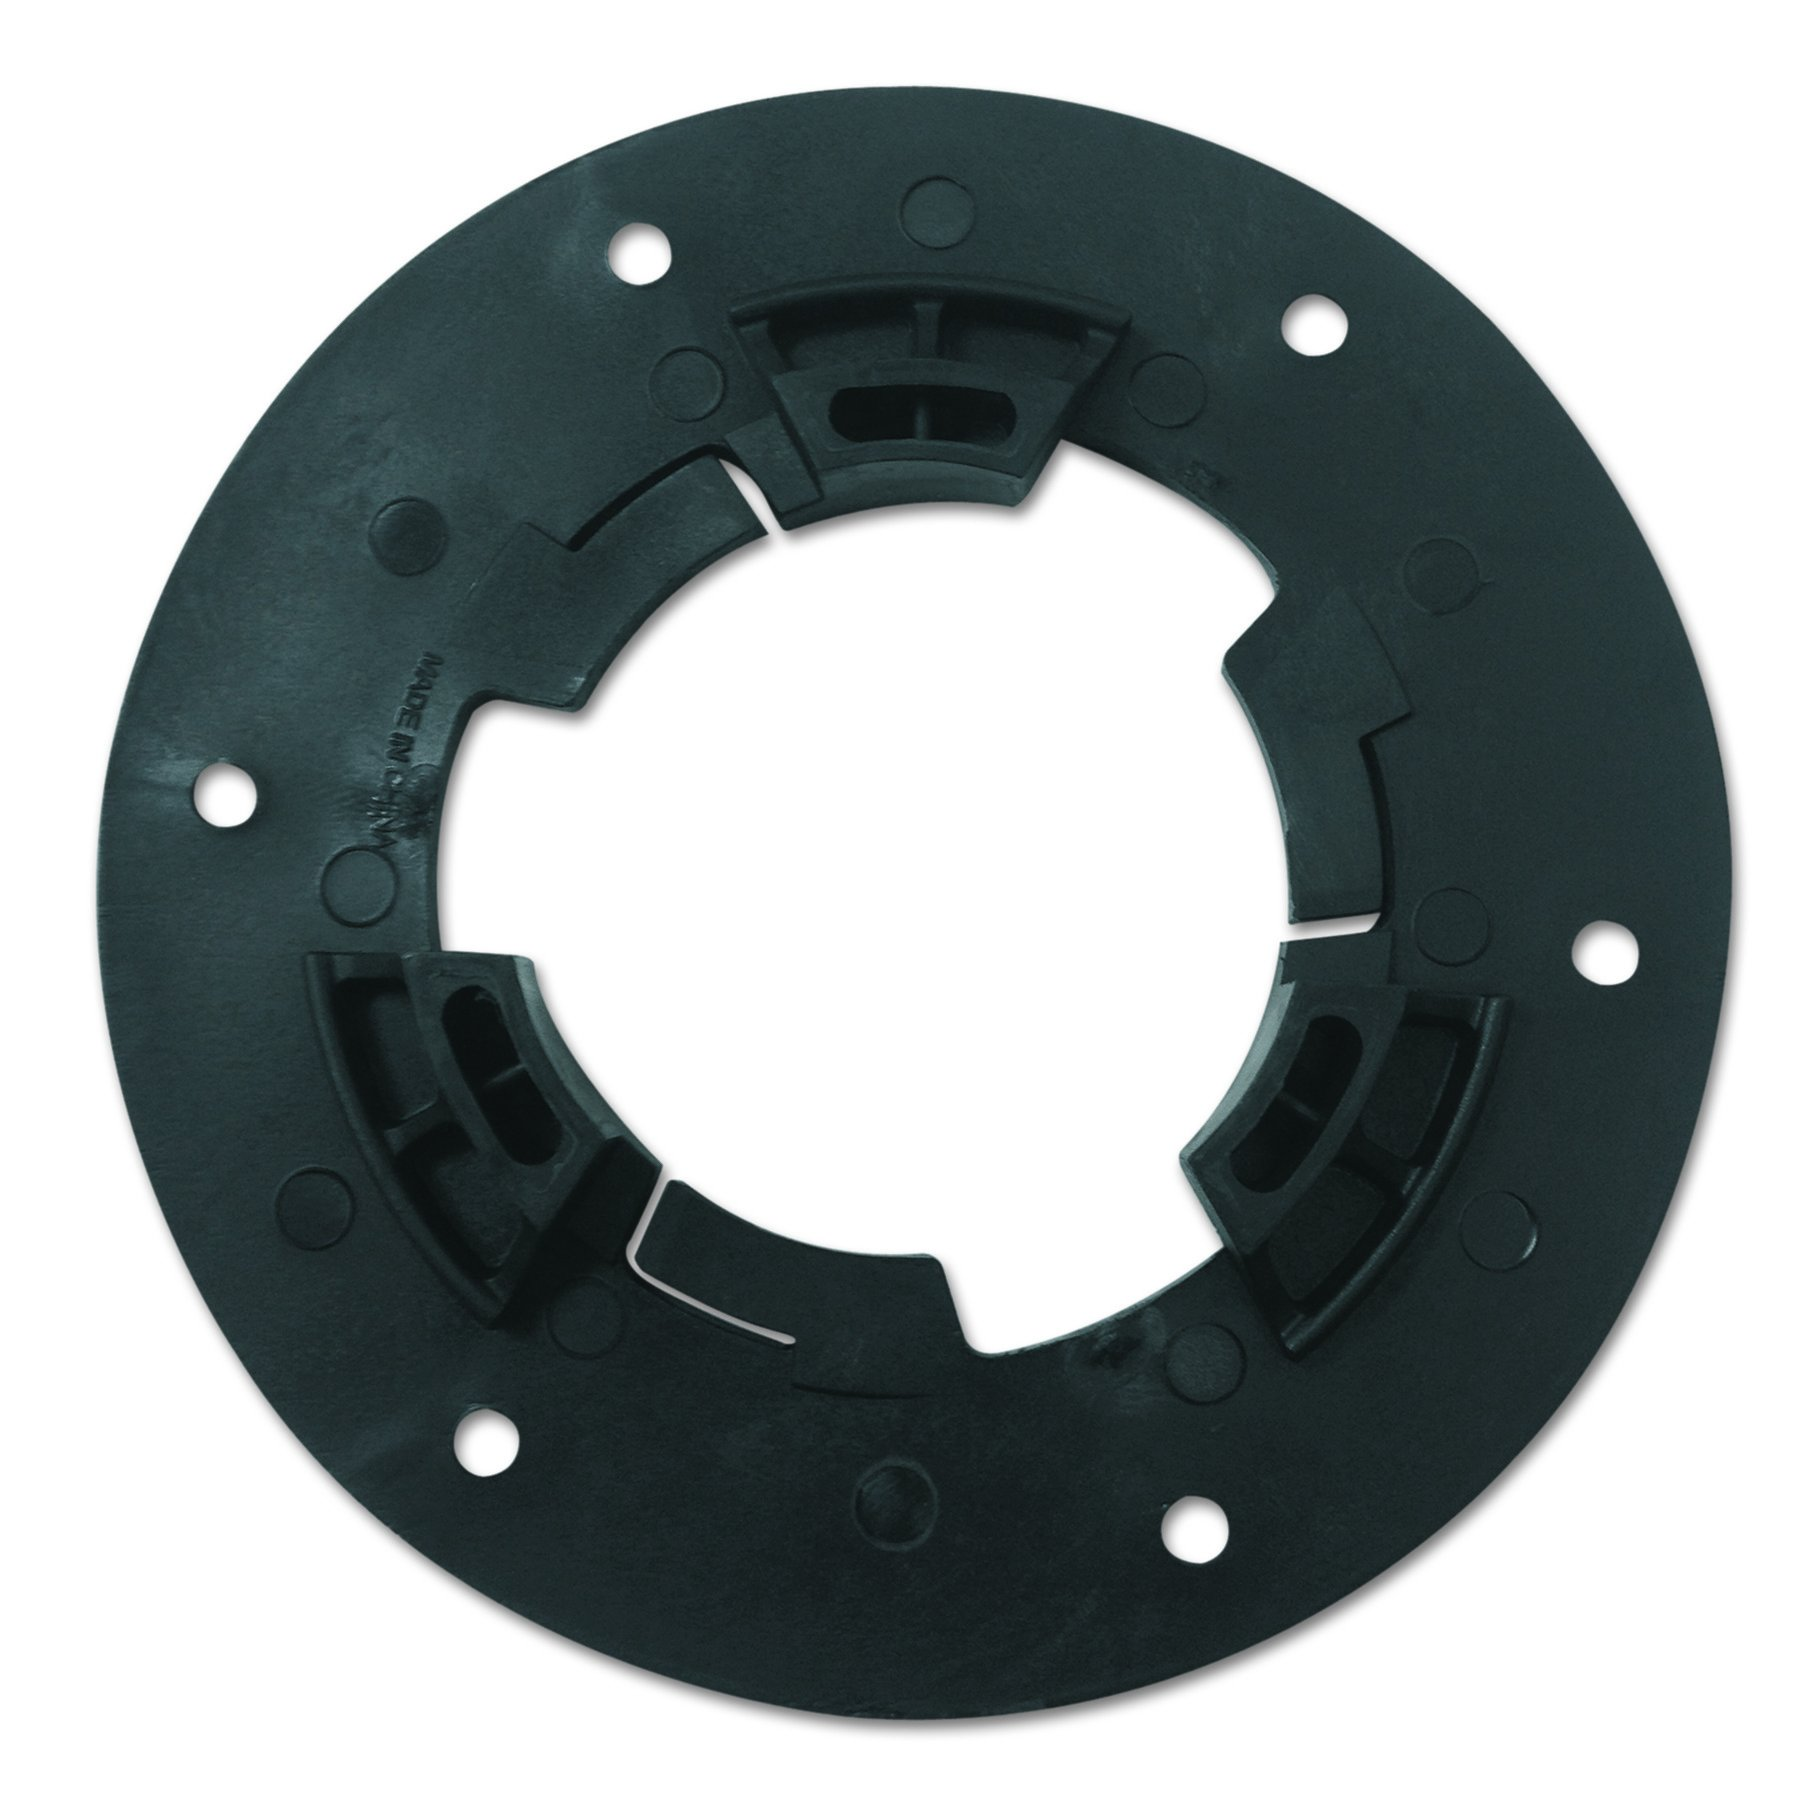 Boardwalk N92 Universal Clutch Plate with 5 Inch Center Hole